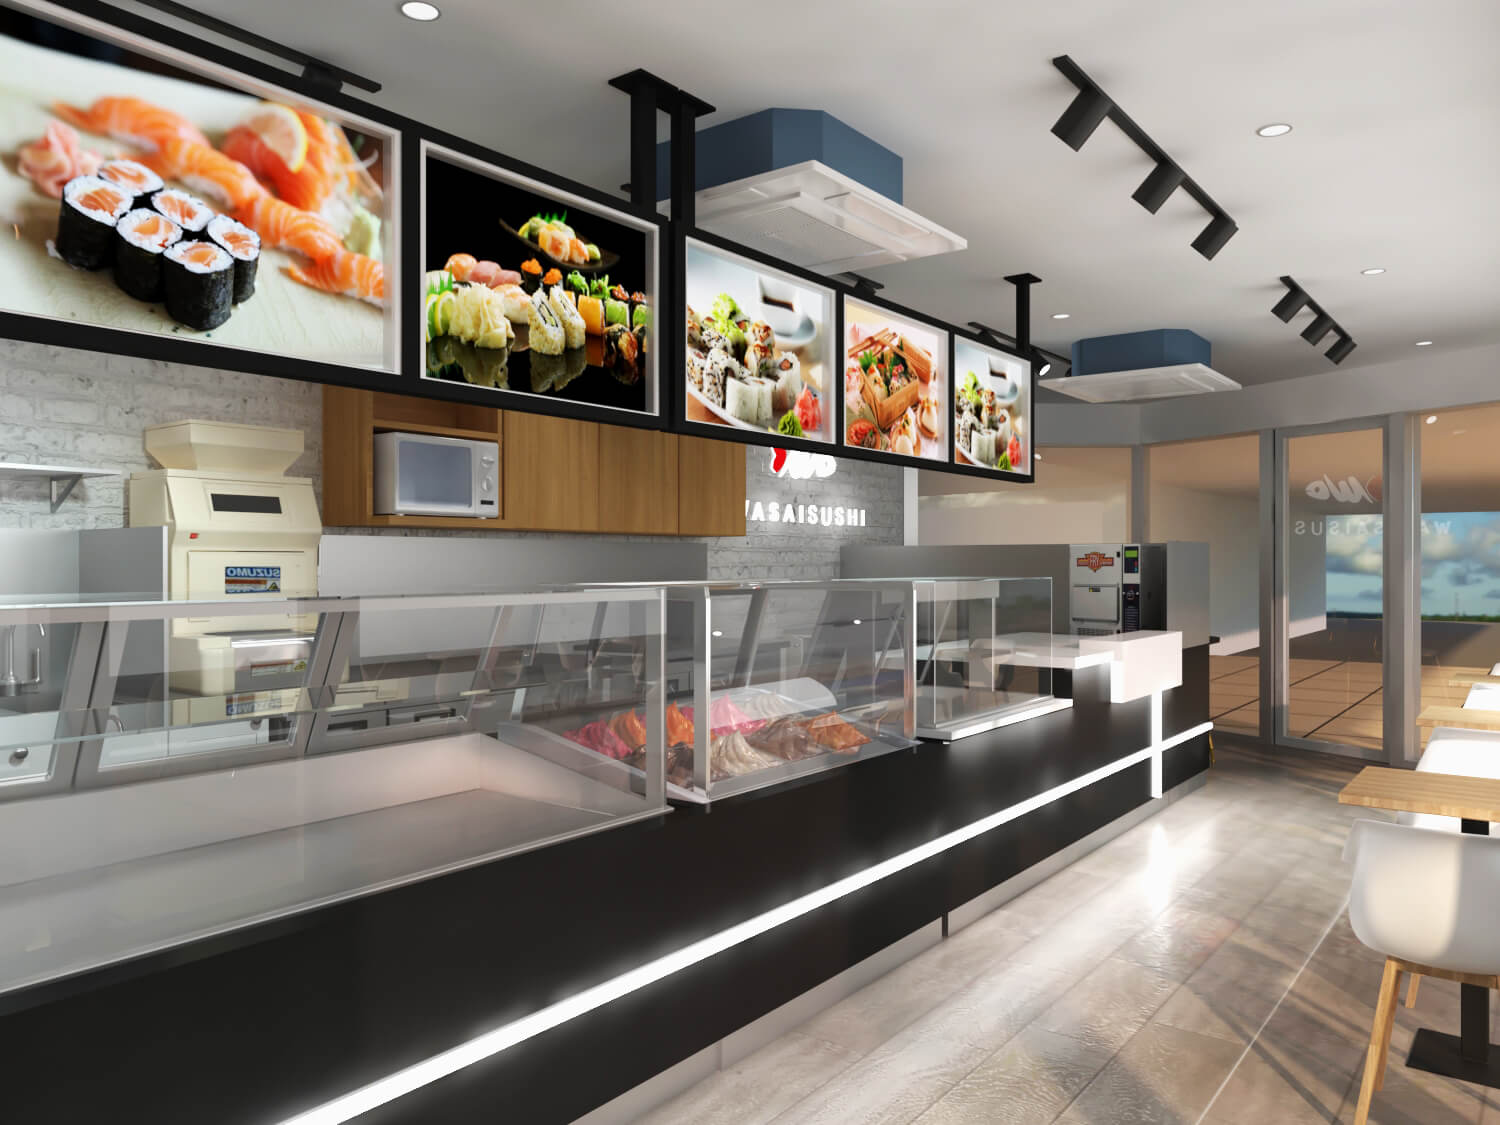 Australia Sushi Store 3D Design & Bar Counter Working Bench in Resturant